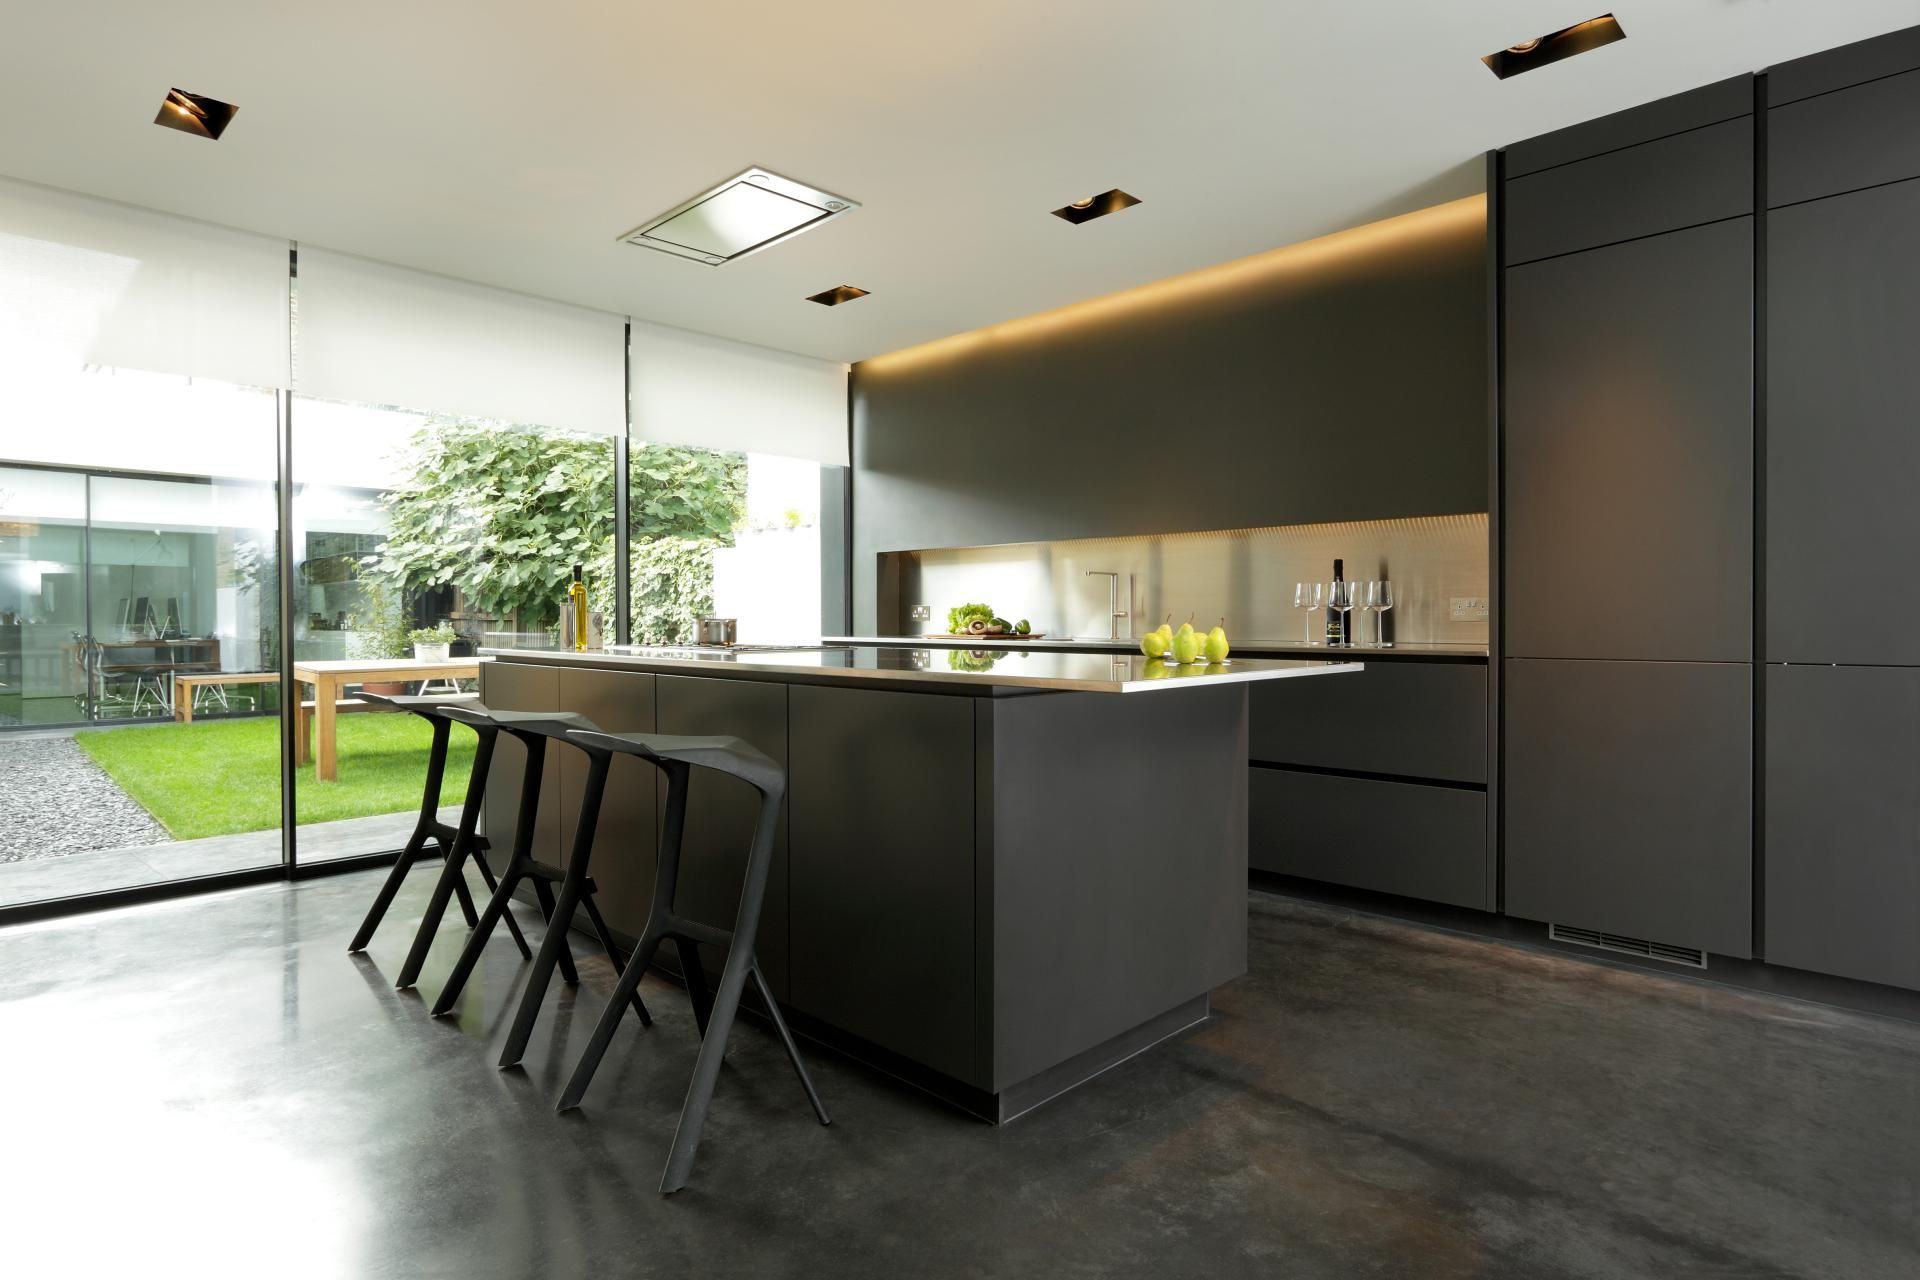 Snowdowne Alno Star Fine Graphite Matt A Smooth Texture And Matt Lacquered Surface Provides A Contemporary And Sleek Finish D Kitchen Cabinet Design Kitchen Design Grey Kitchen Cabinets